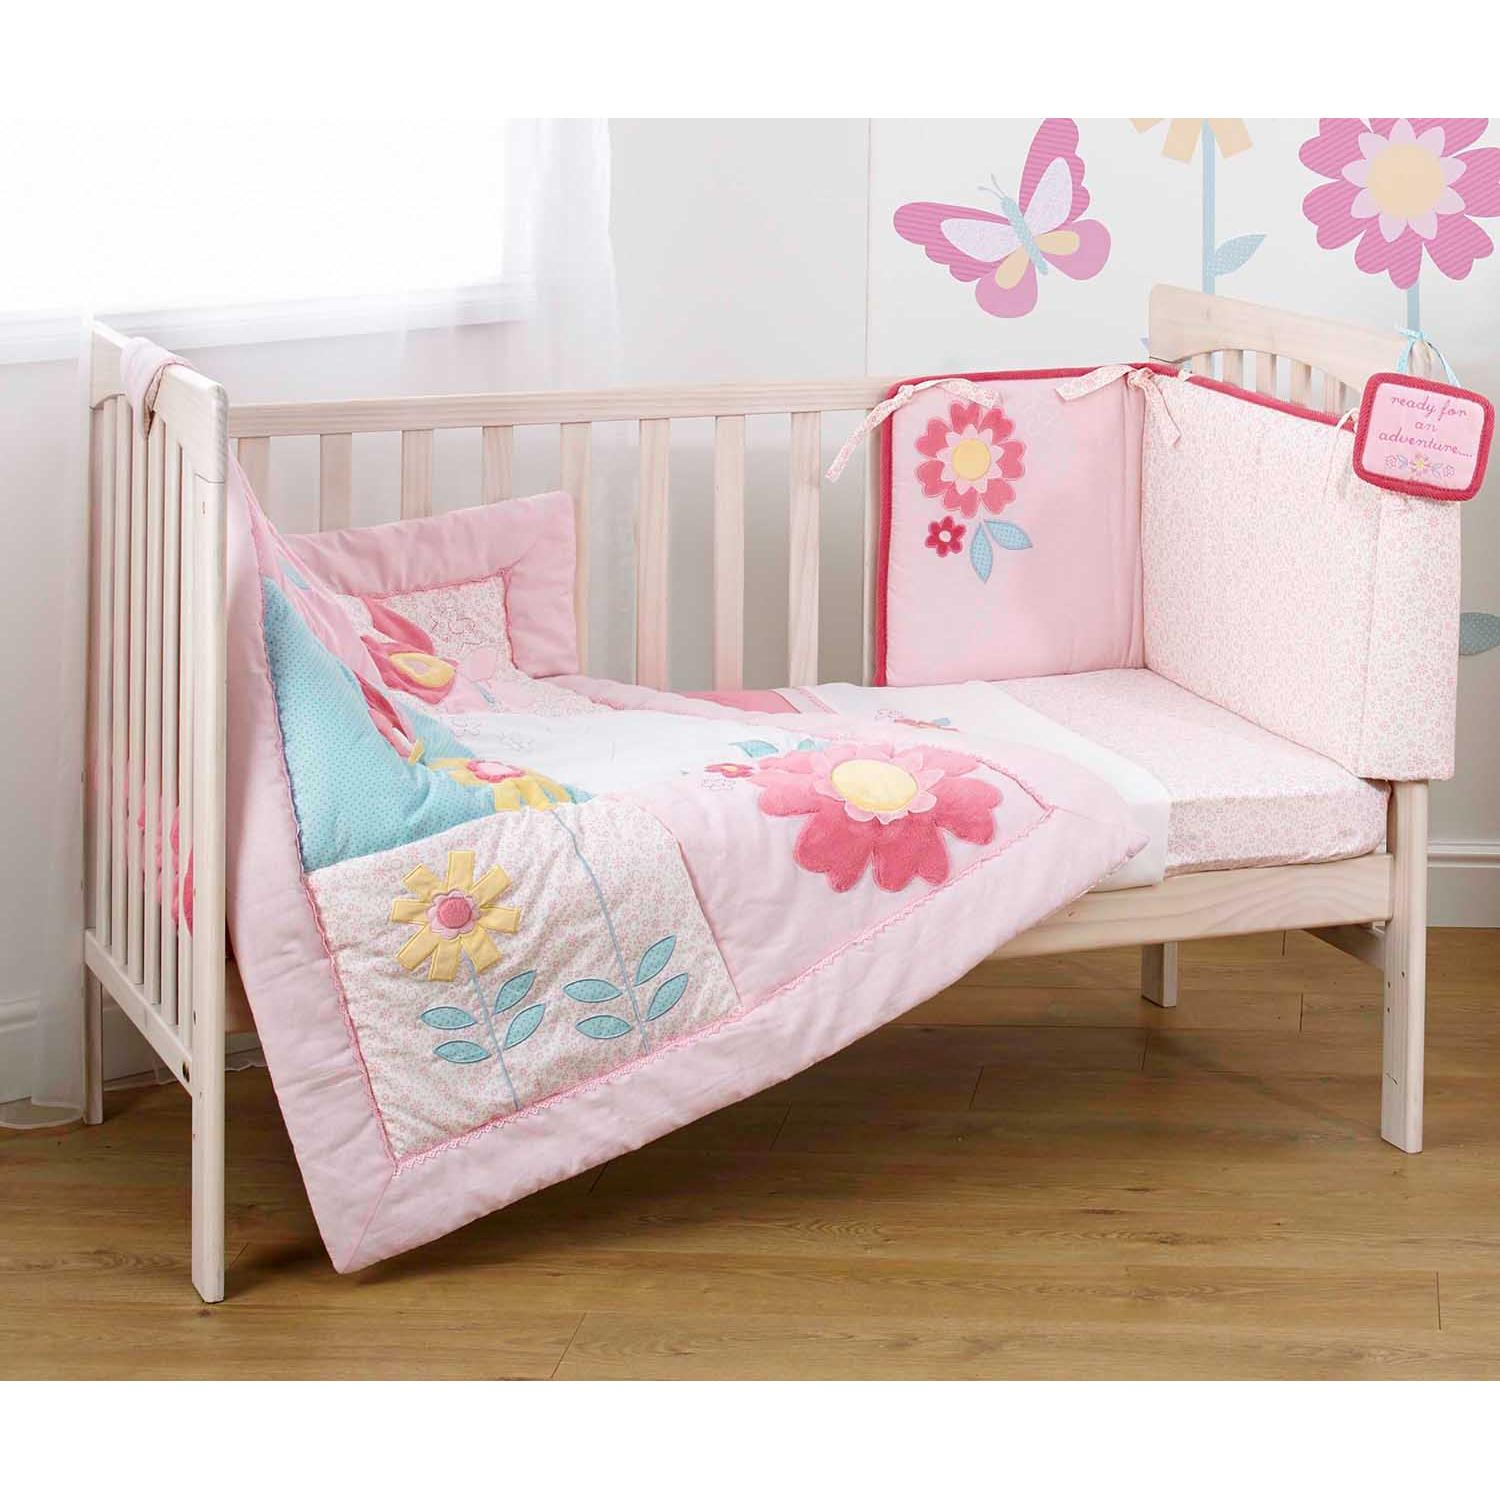 cot bedding sets hover to zoom JMRLUDL